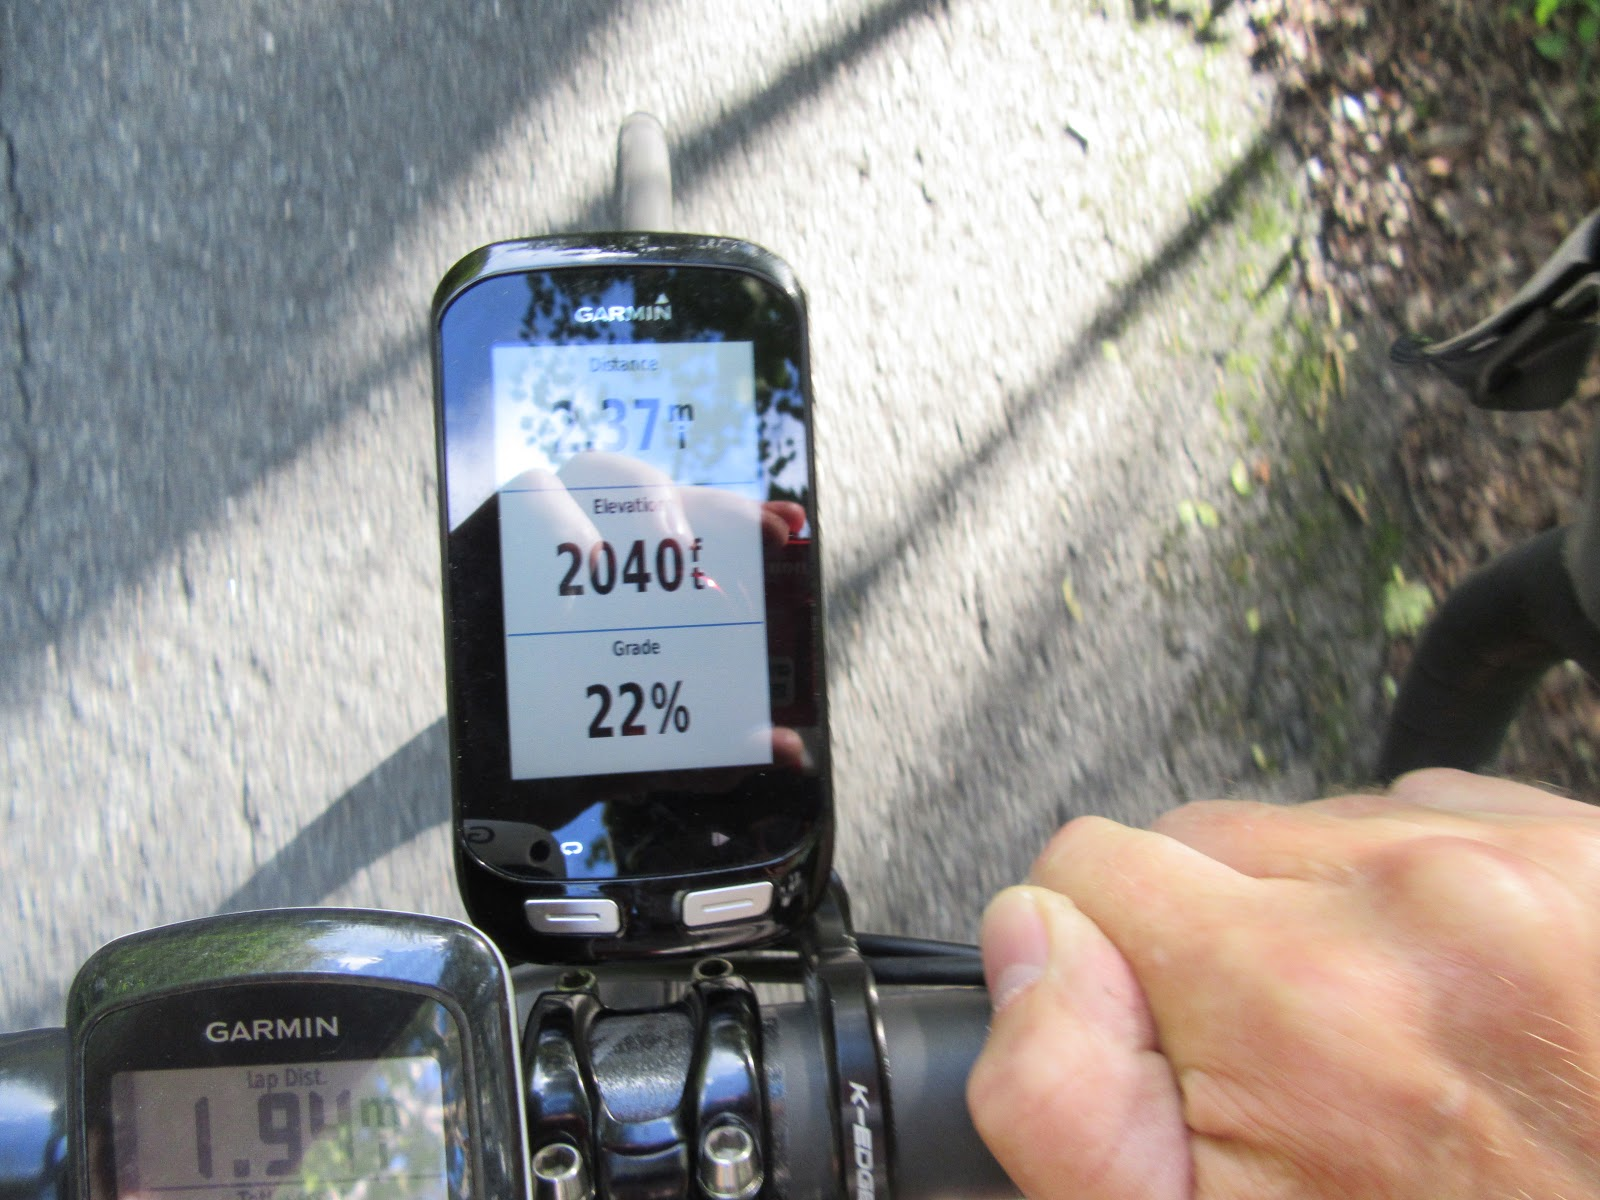 Bicycle climb of Burke Mountain - Garmin reading 22%